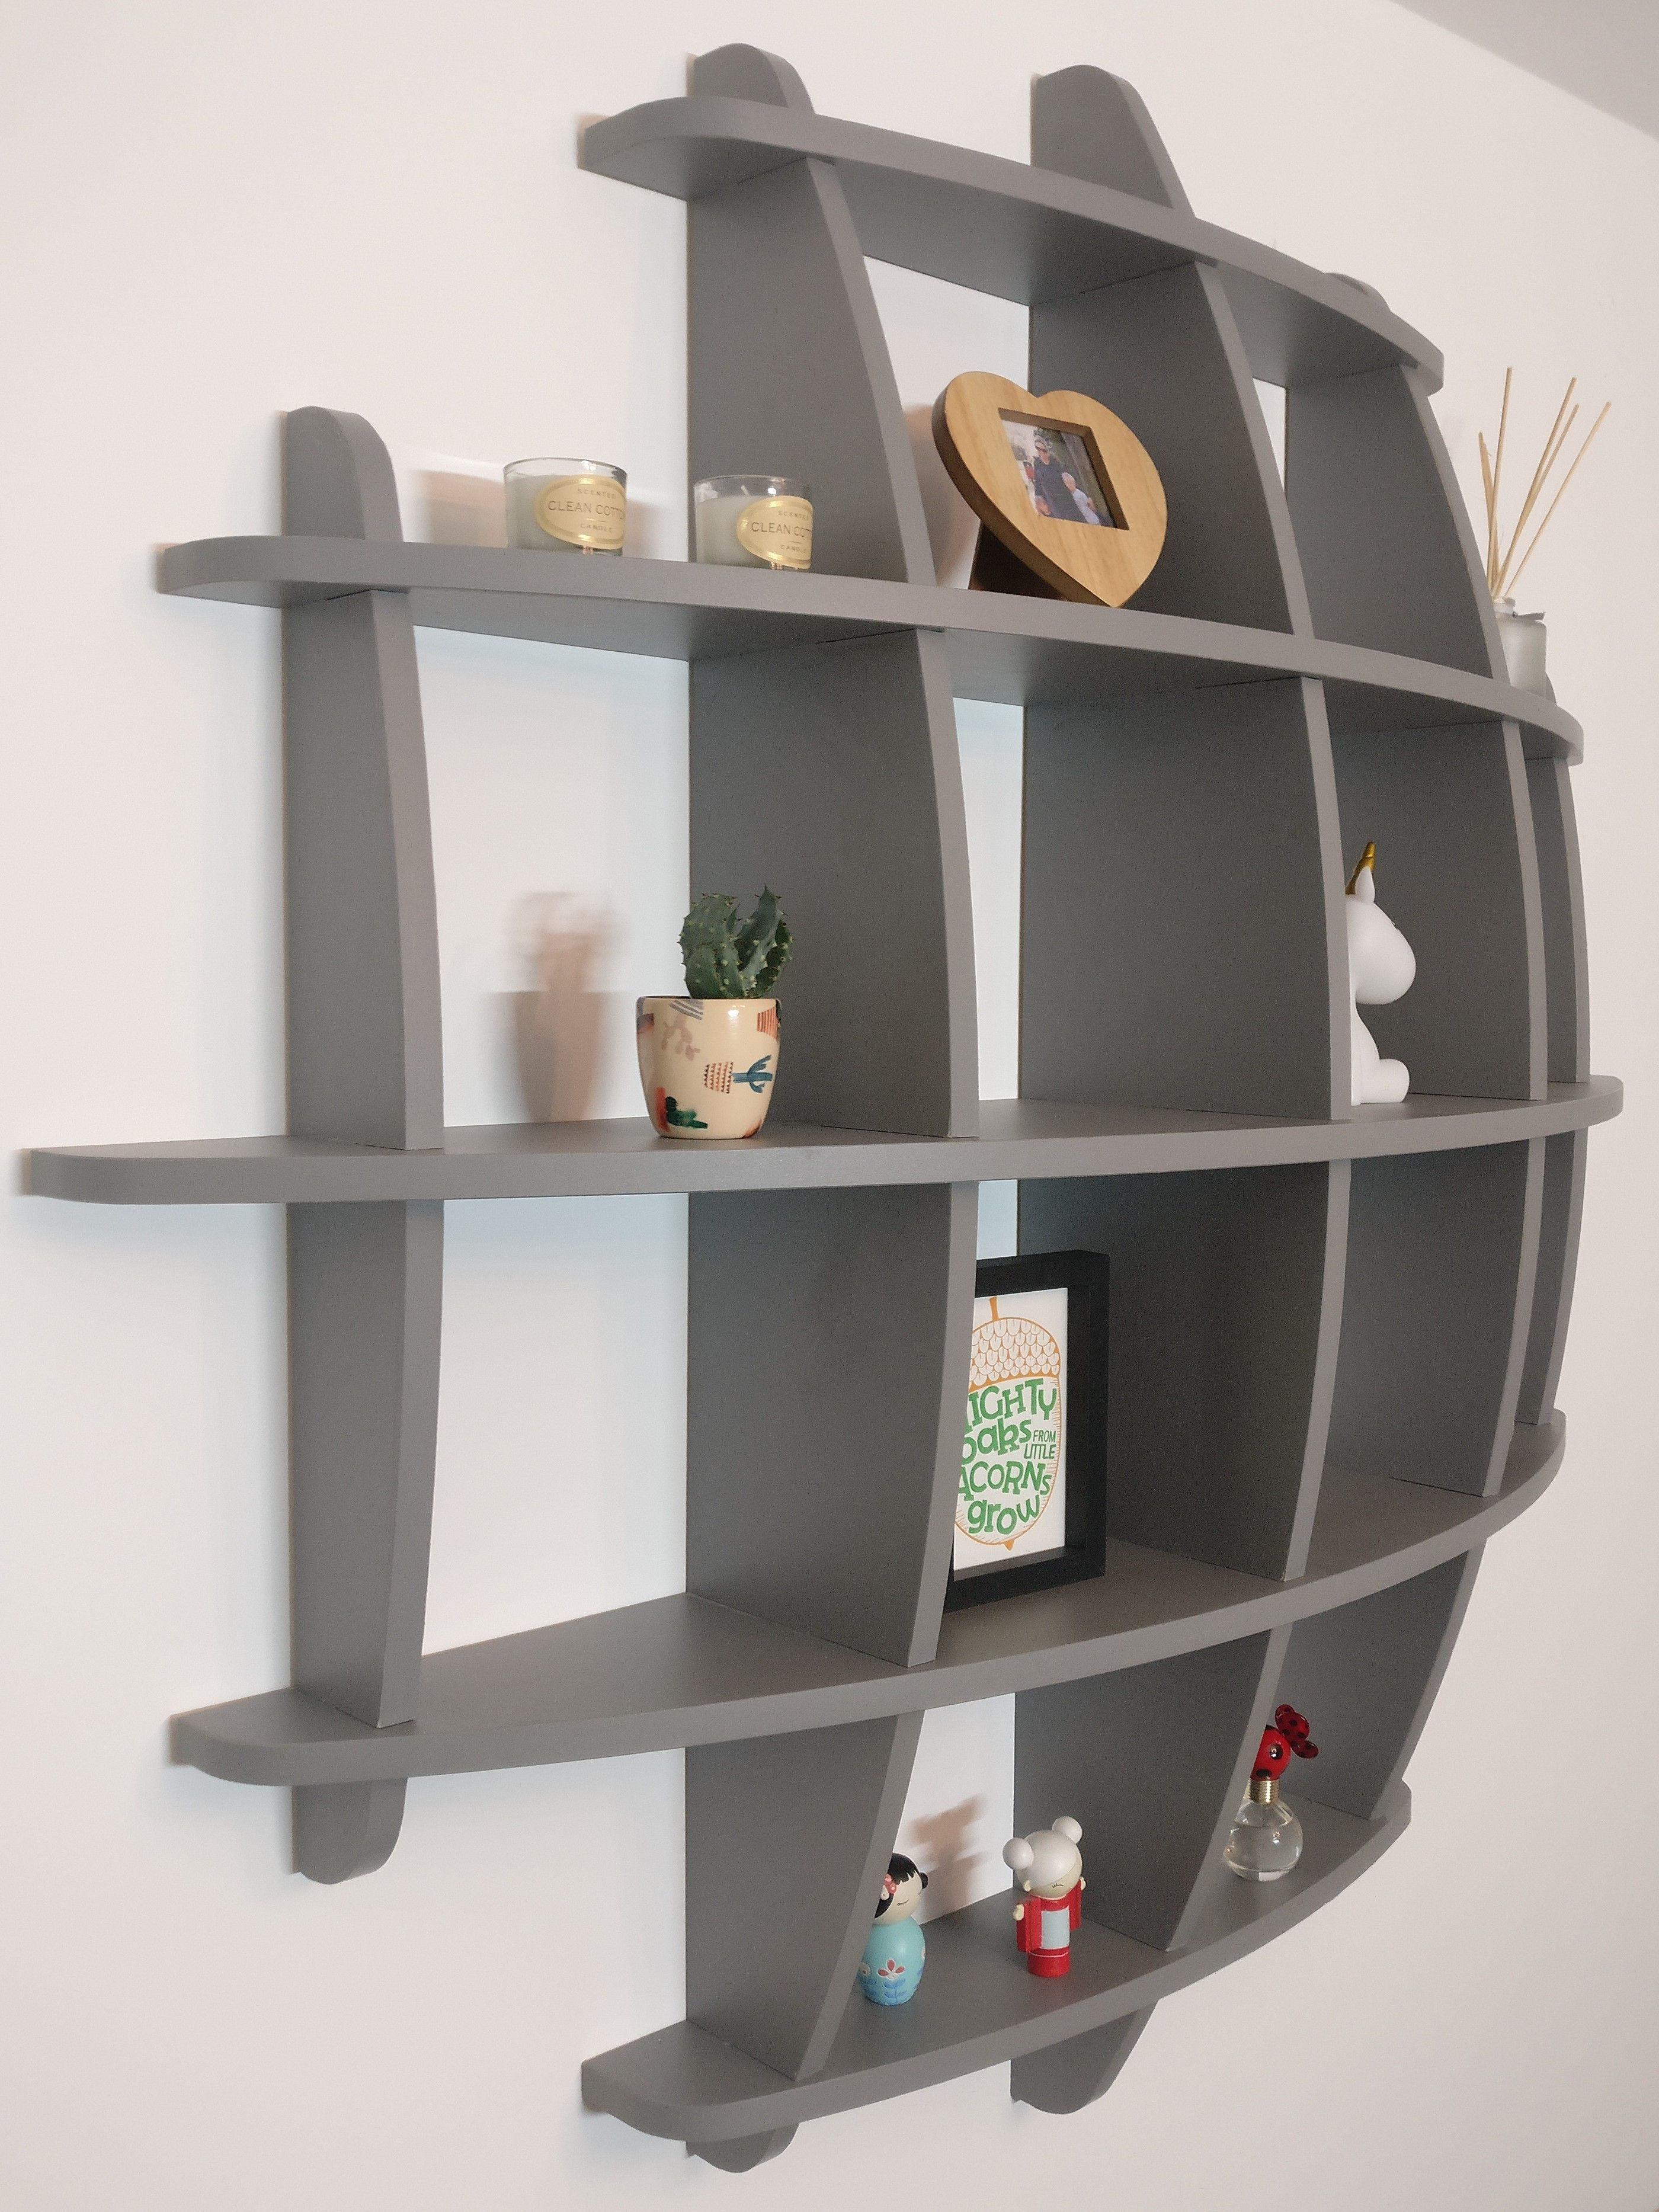 Curved Shelving Unit By Airedale Interiors Palette Furniture Coffee Bar Home Shelves In Bedroom